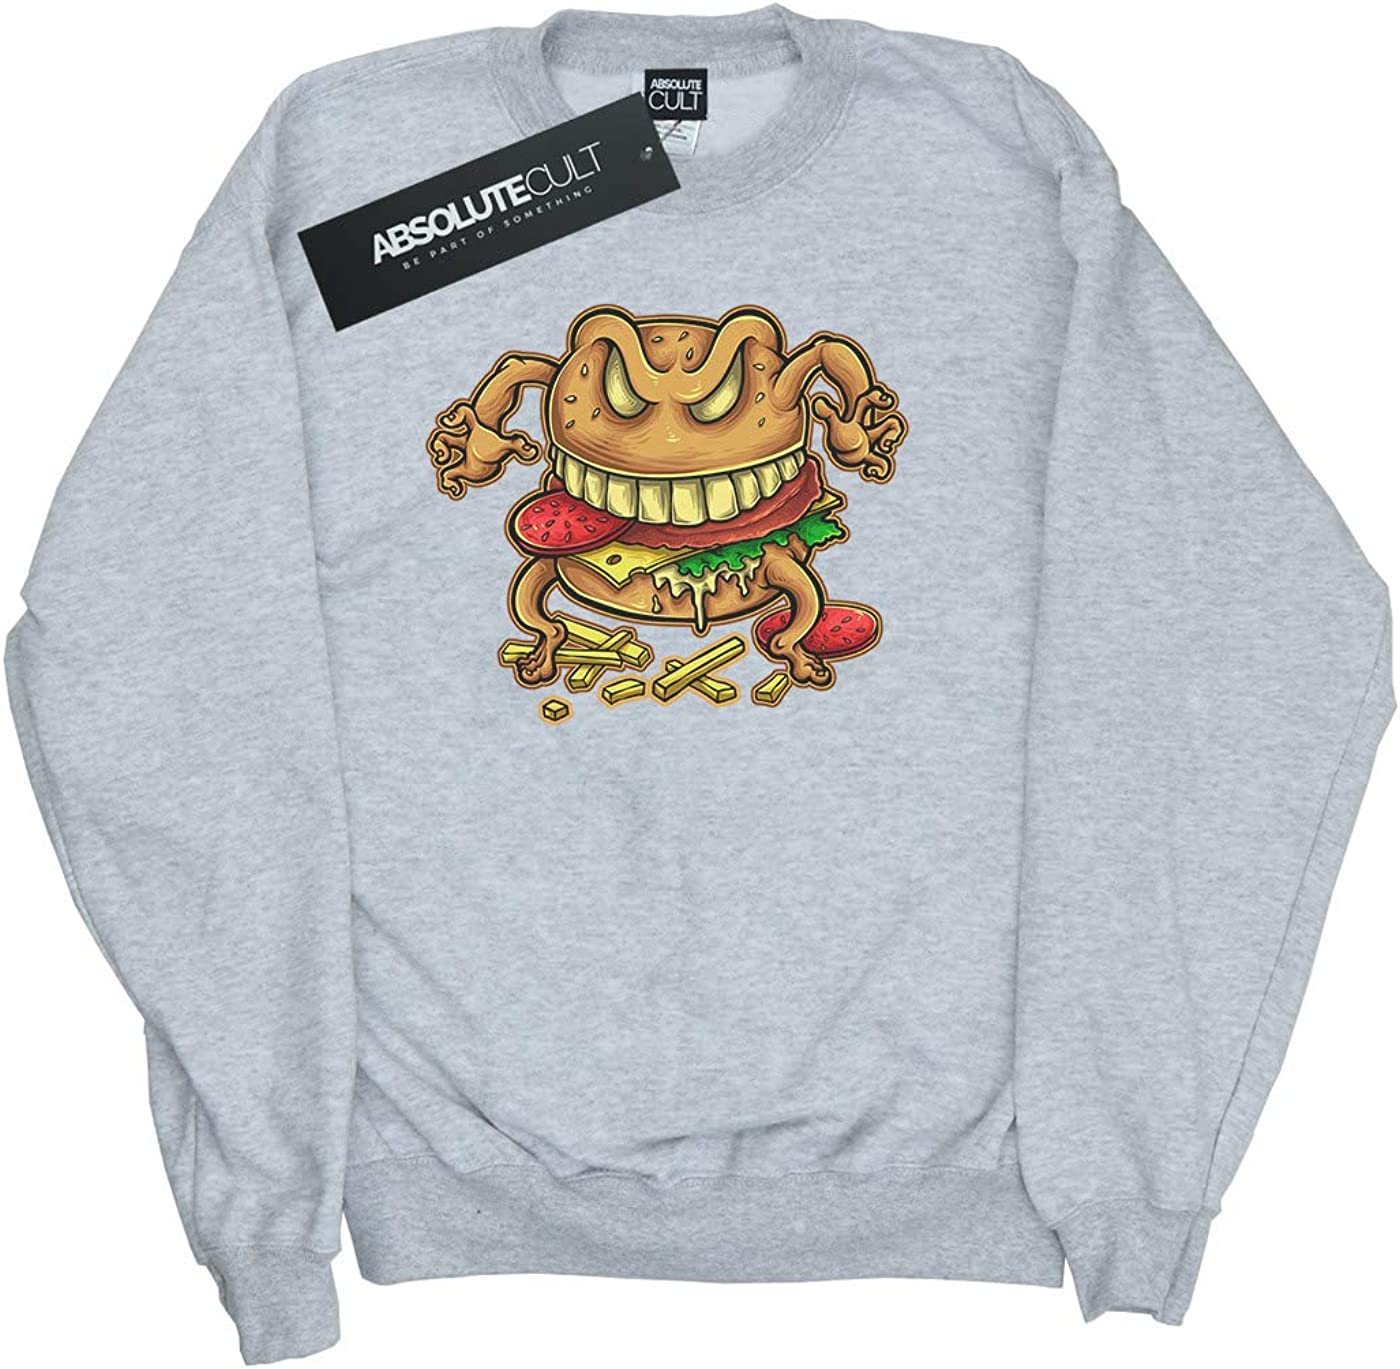 Absolute Cult Drewbacca Girls Curse of The Burger Sweatshirt